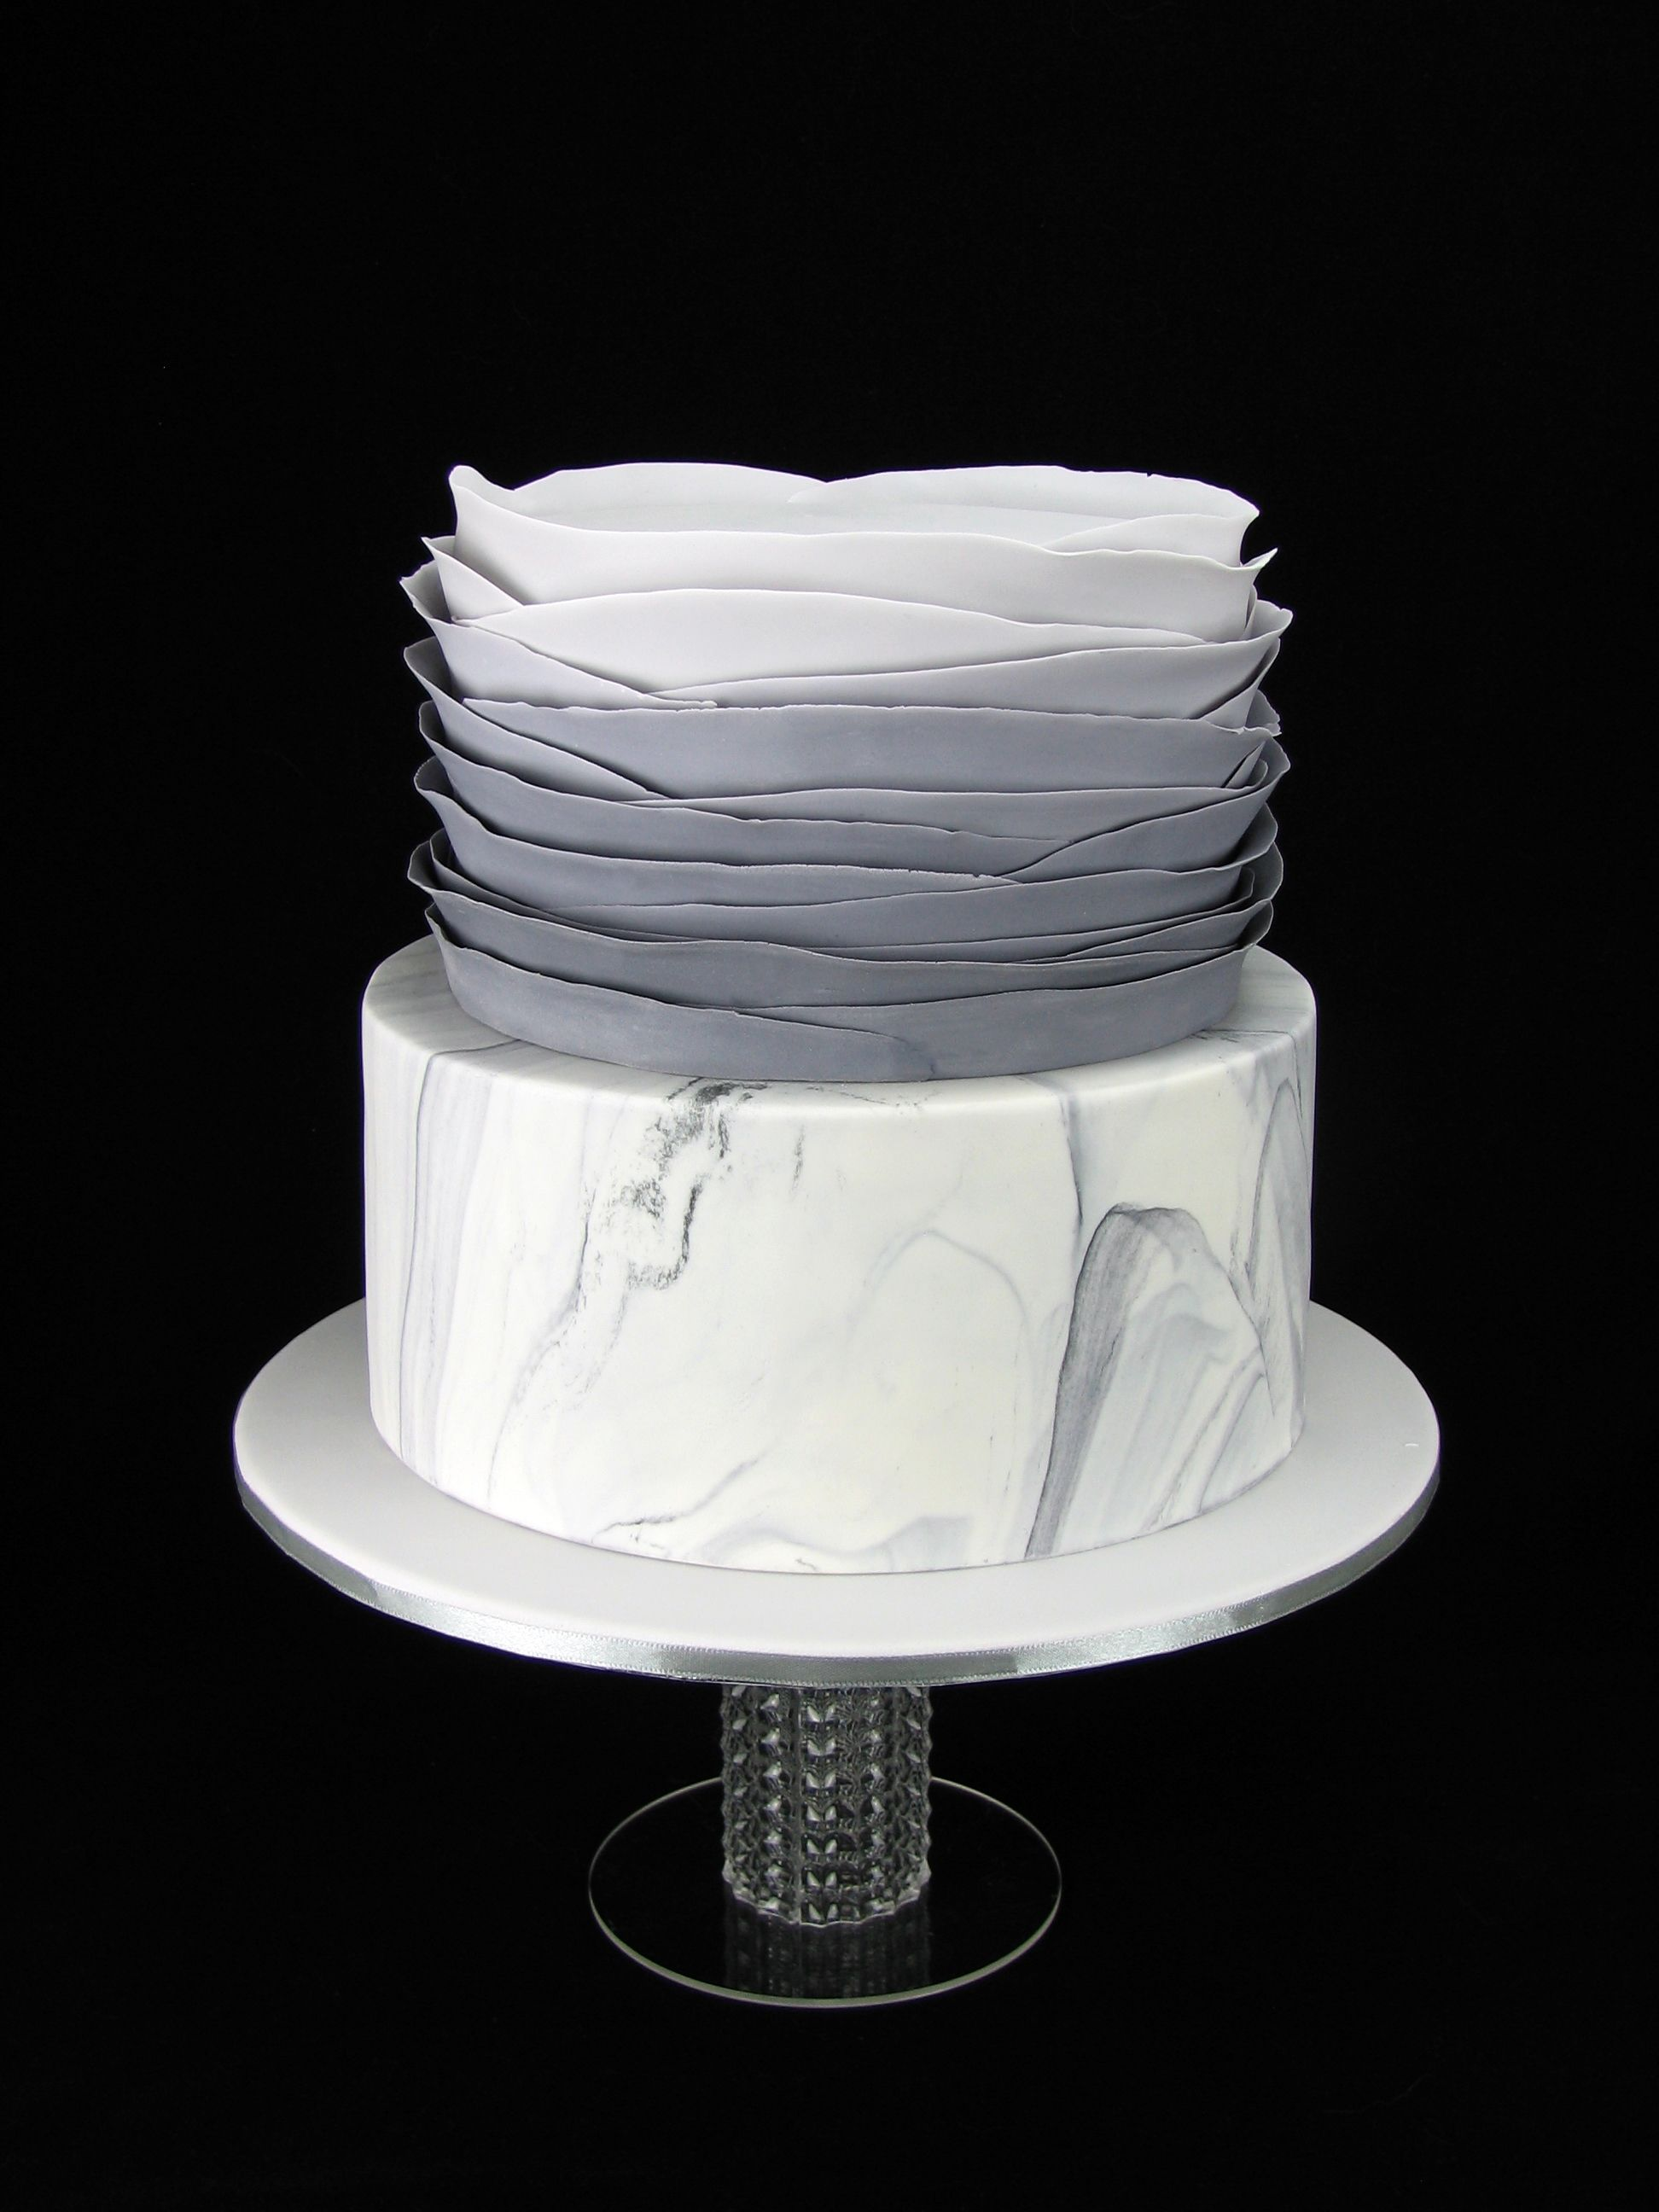 A sophisticated grey ombre and marbled fondant cake for a 21st